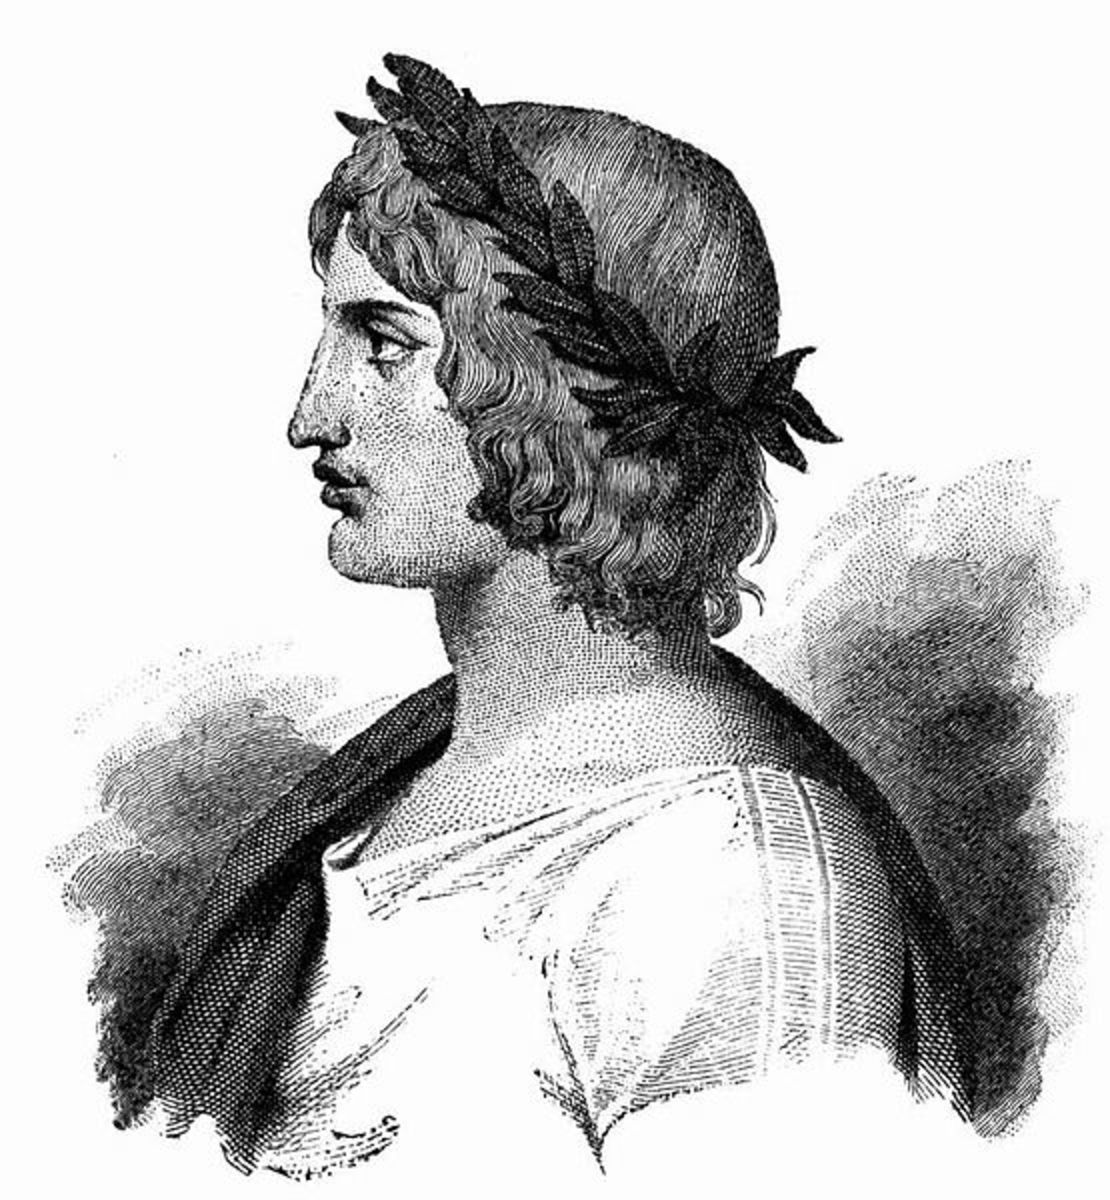 An Analysis of Queen Dido in Virgil's